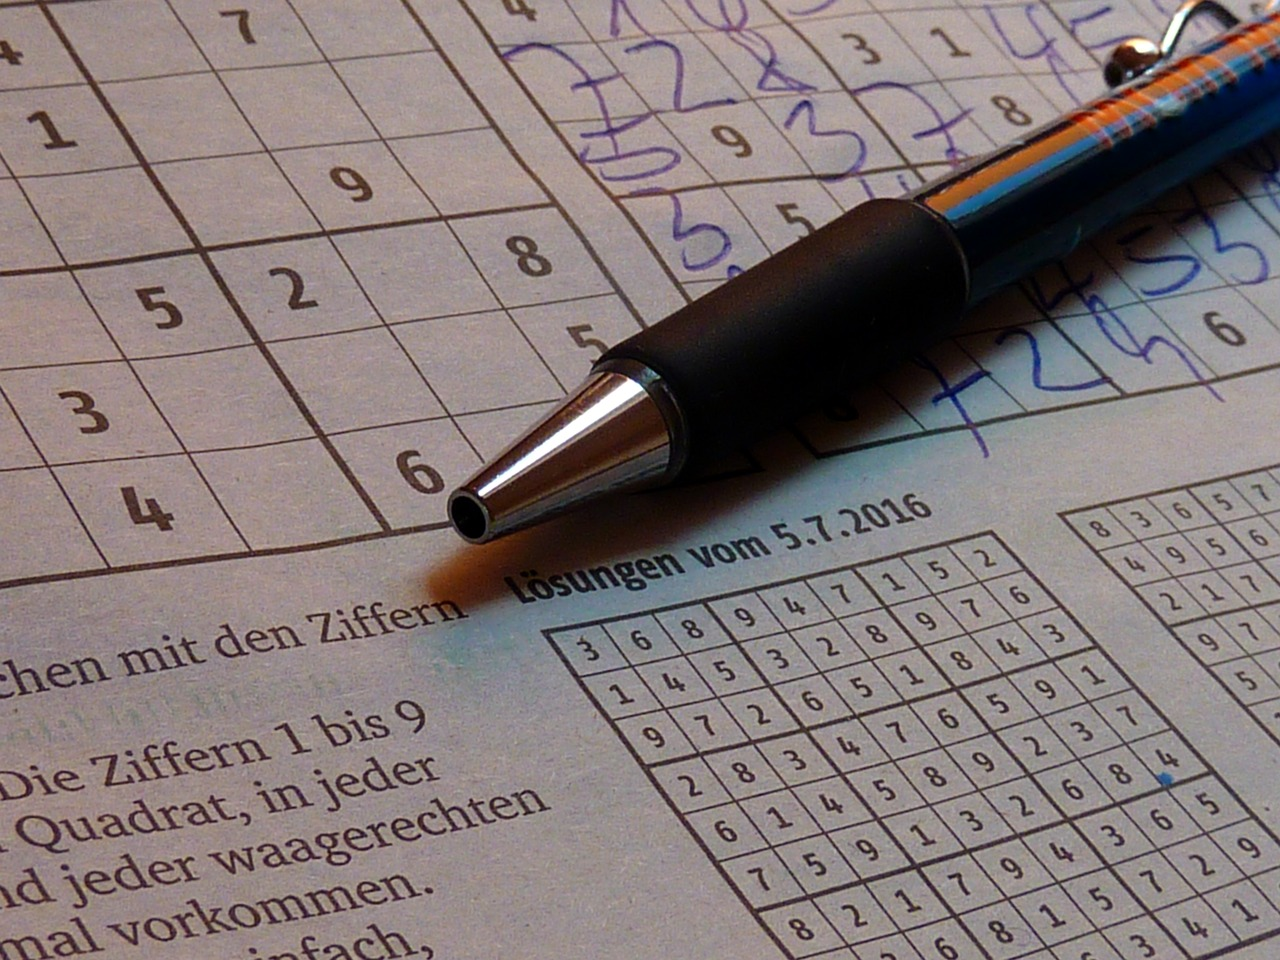 pencil and sudoku puzzle